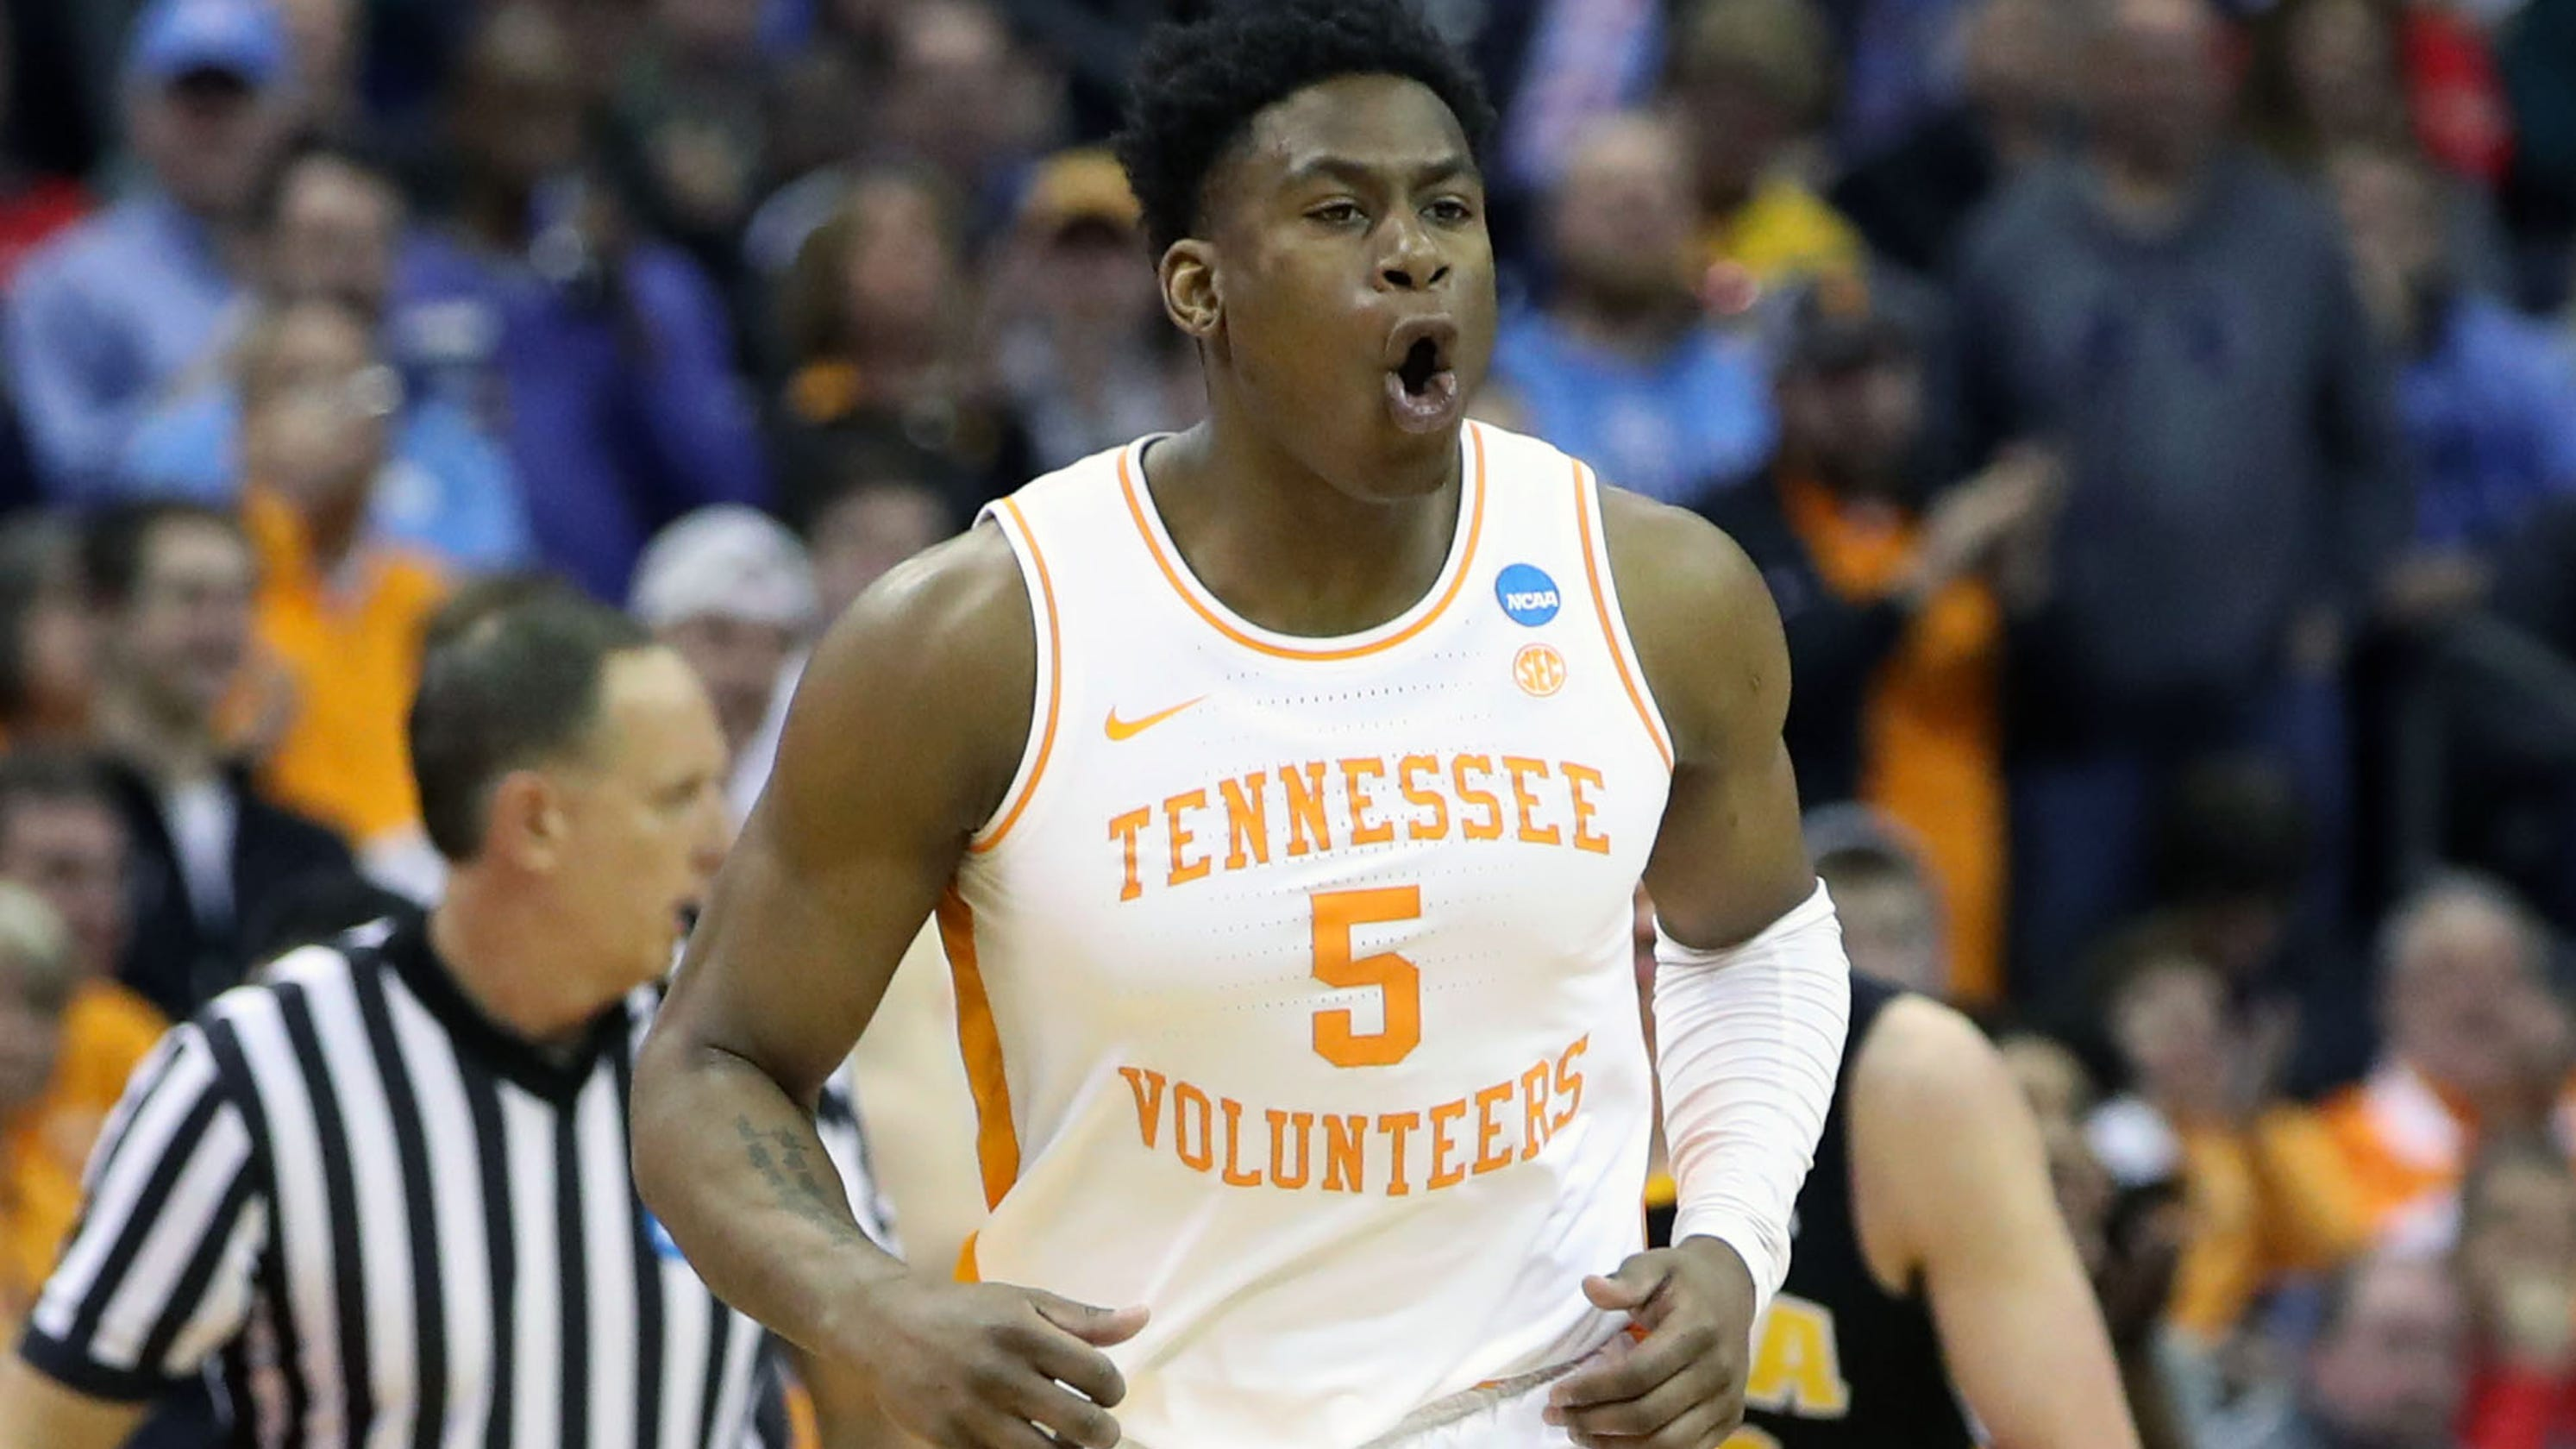 Tennessee blows 25-point lead and then survives Iowa in overtime to reach NCAA Sweet 16